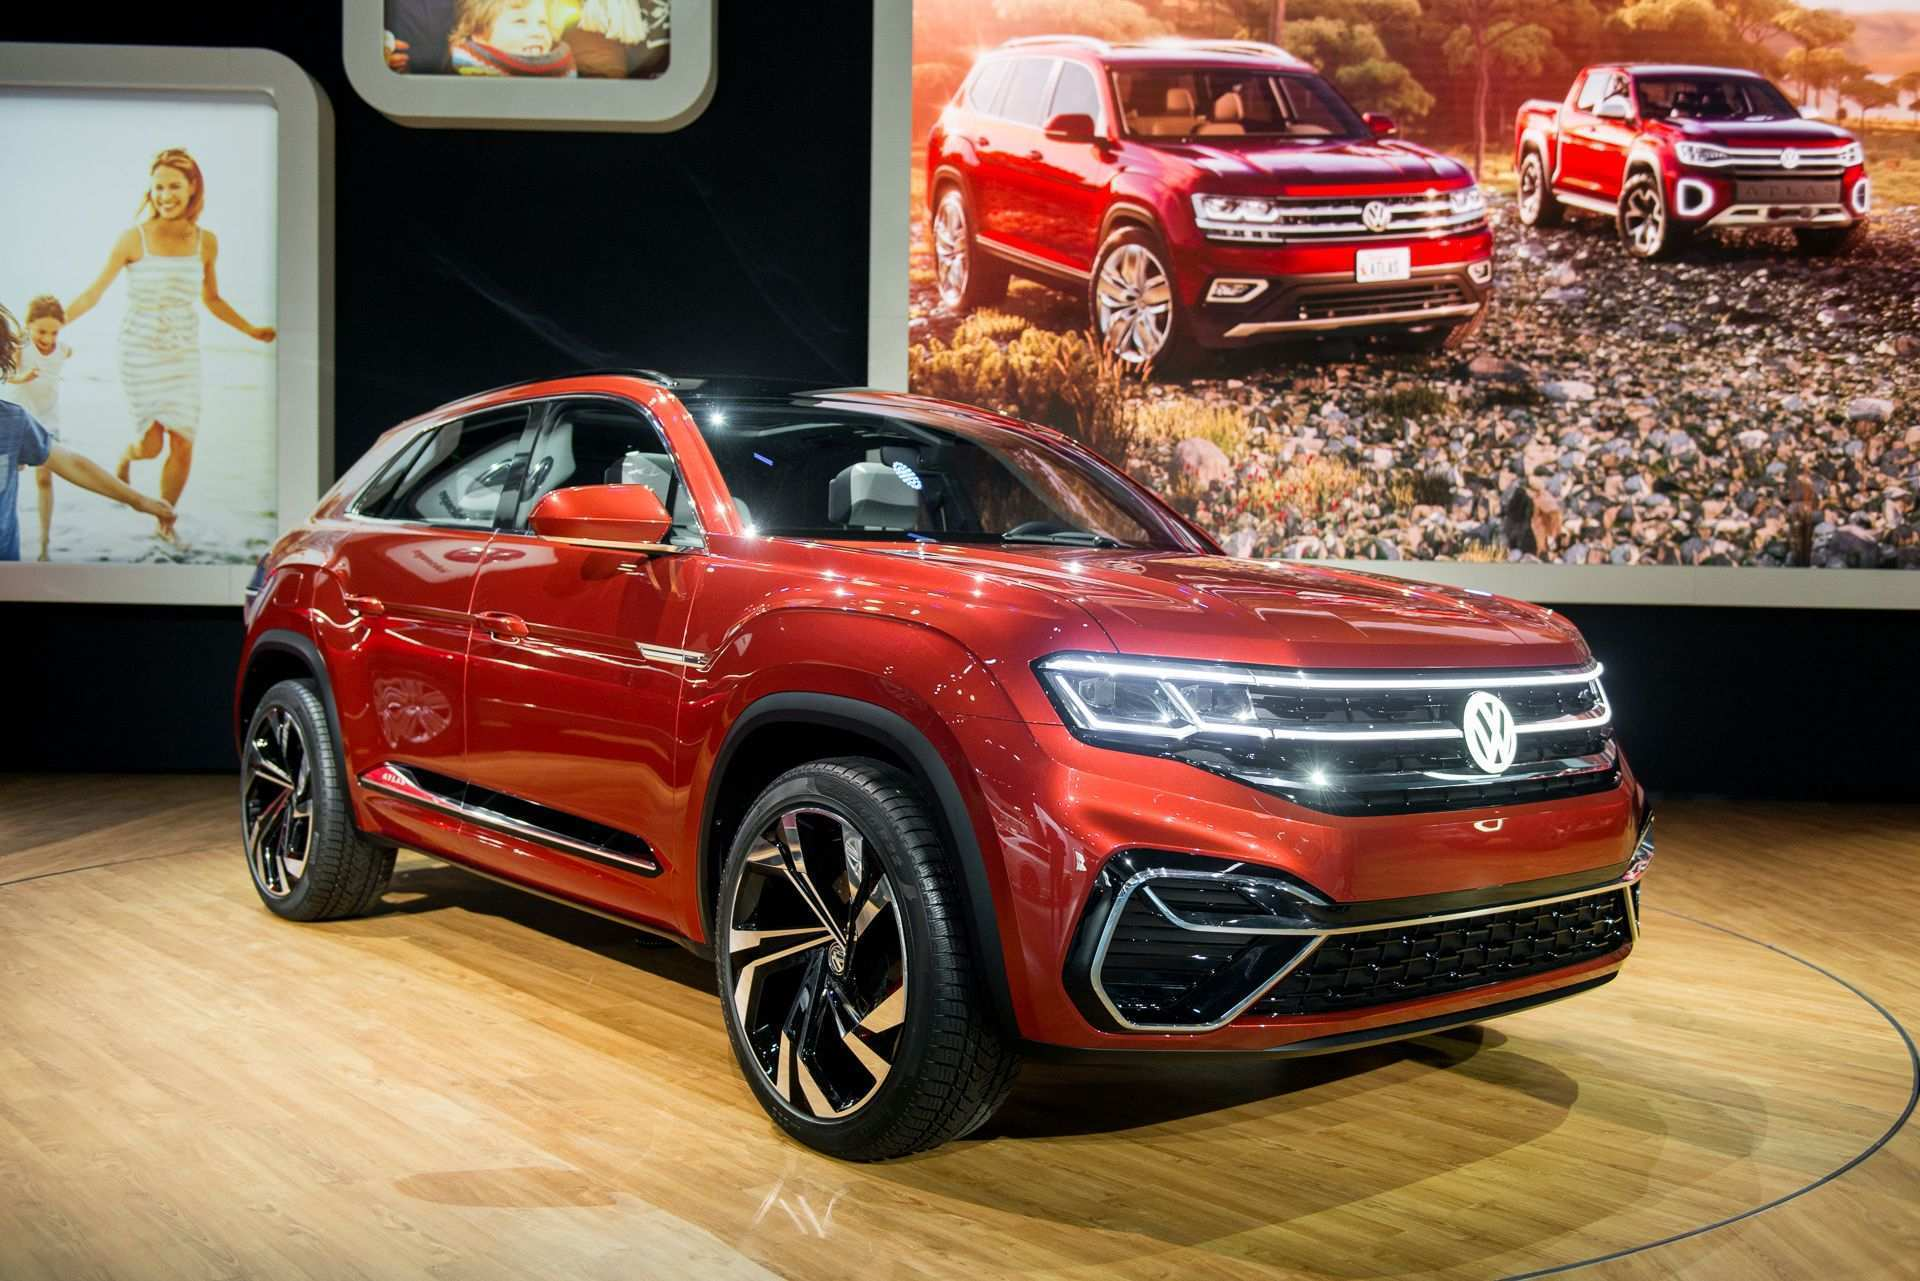 13 All New Volkswagen 2020 Exterior Redesign and Concept by Volkswagen 2020 Exterior